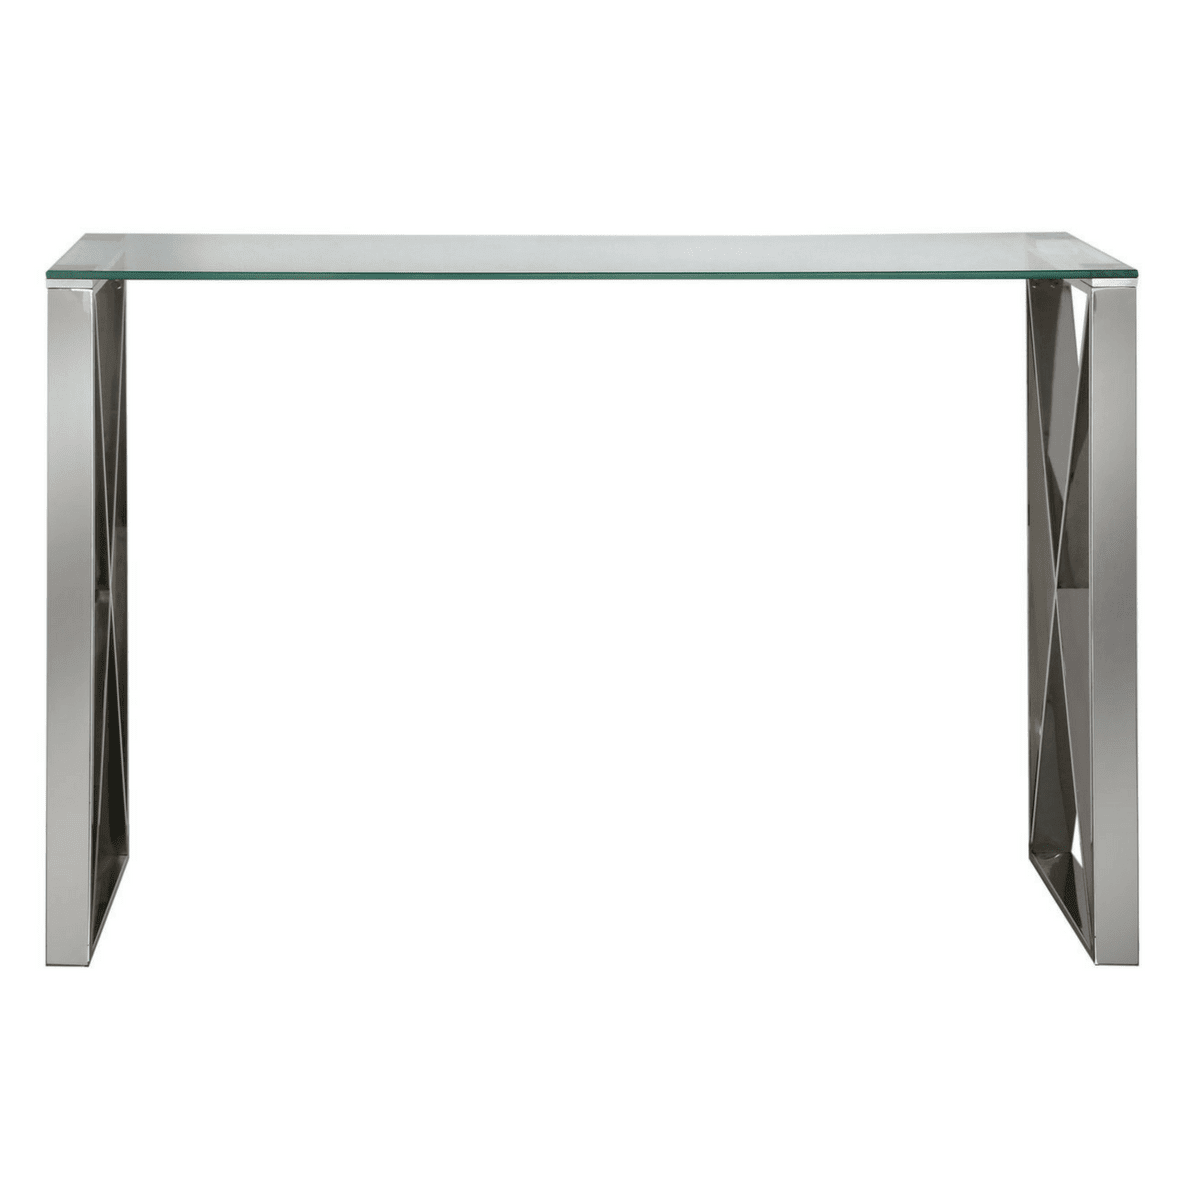 Zenith Stainless Steel Console Table Corcorans Furniture Carpets